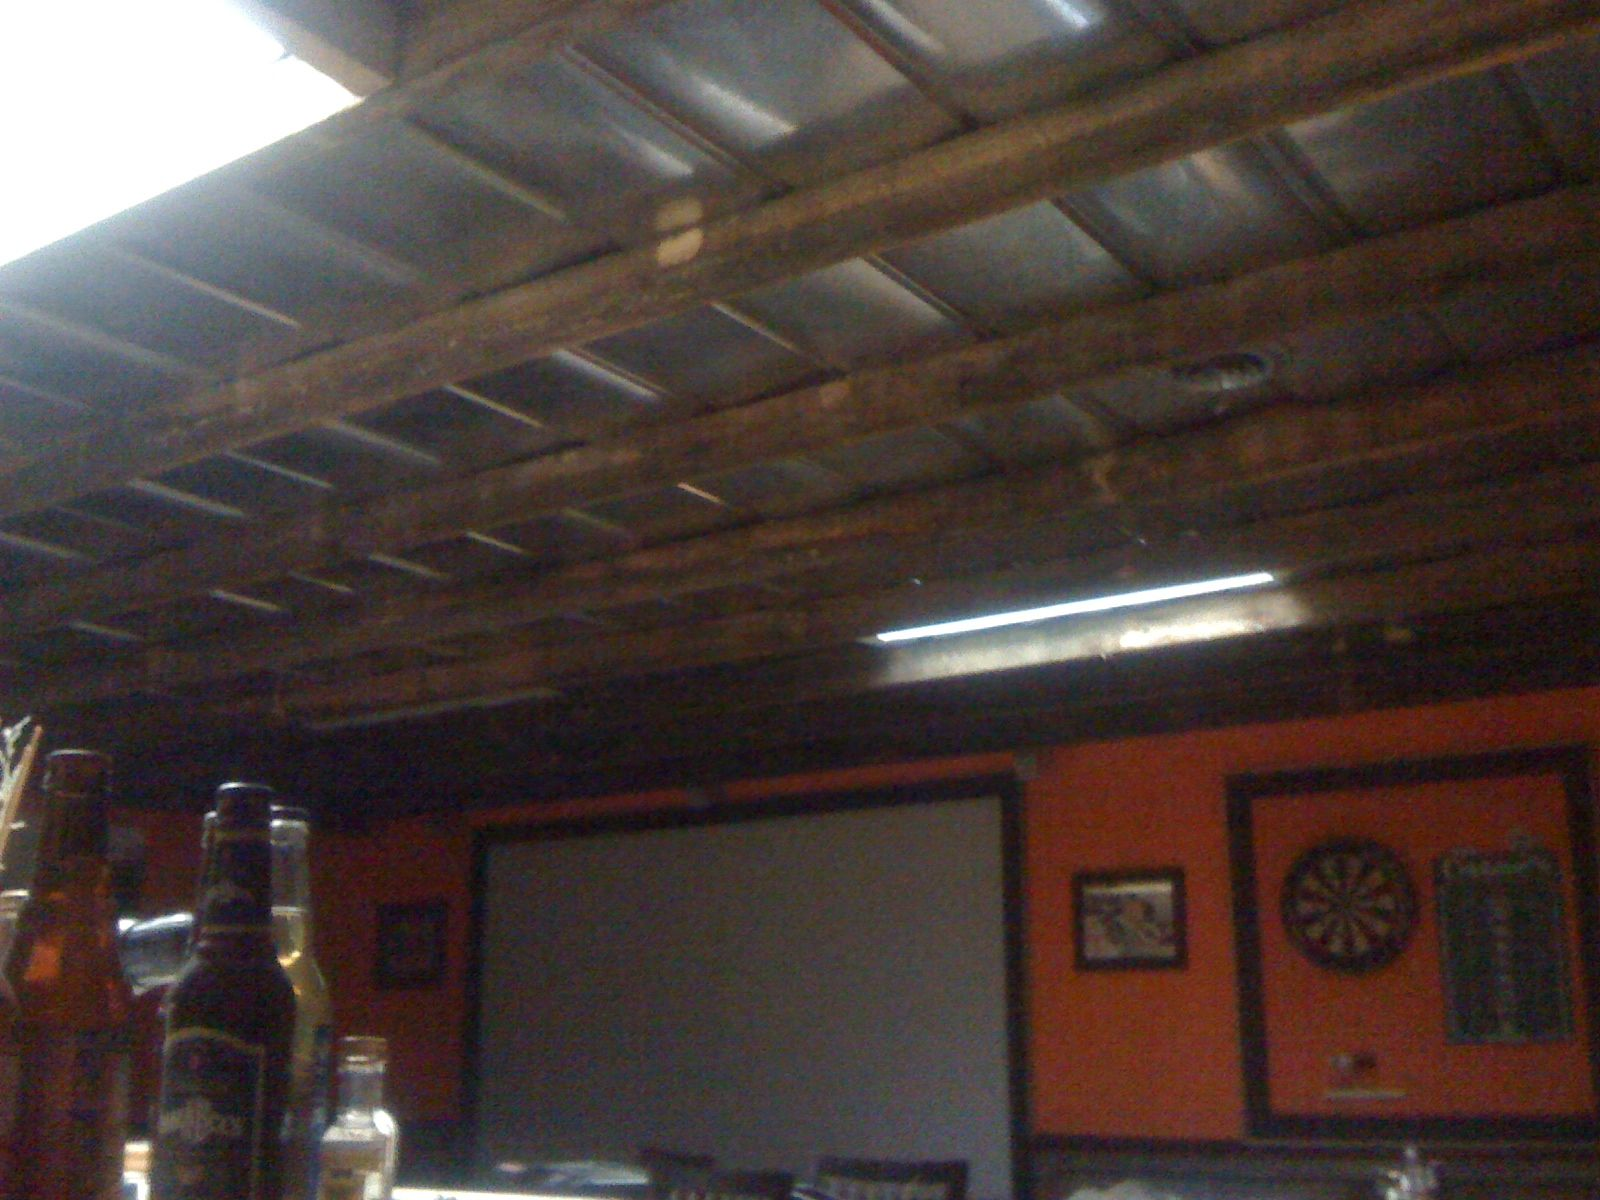 5v metal roofing screwed to the ceiling then 2x4 rough